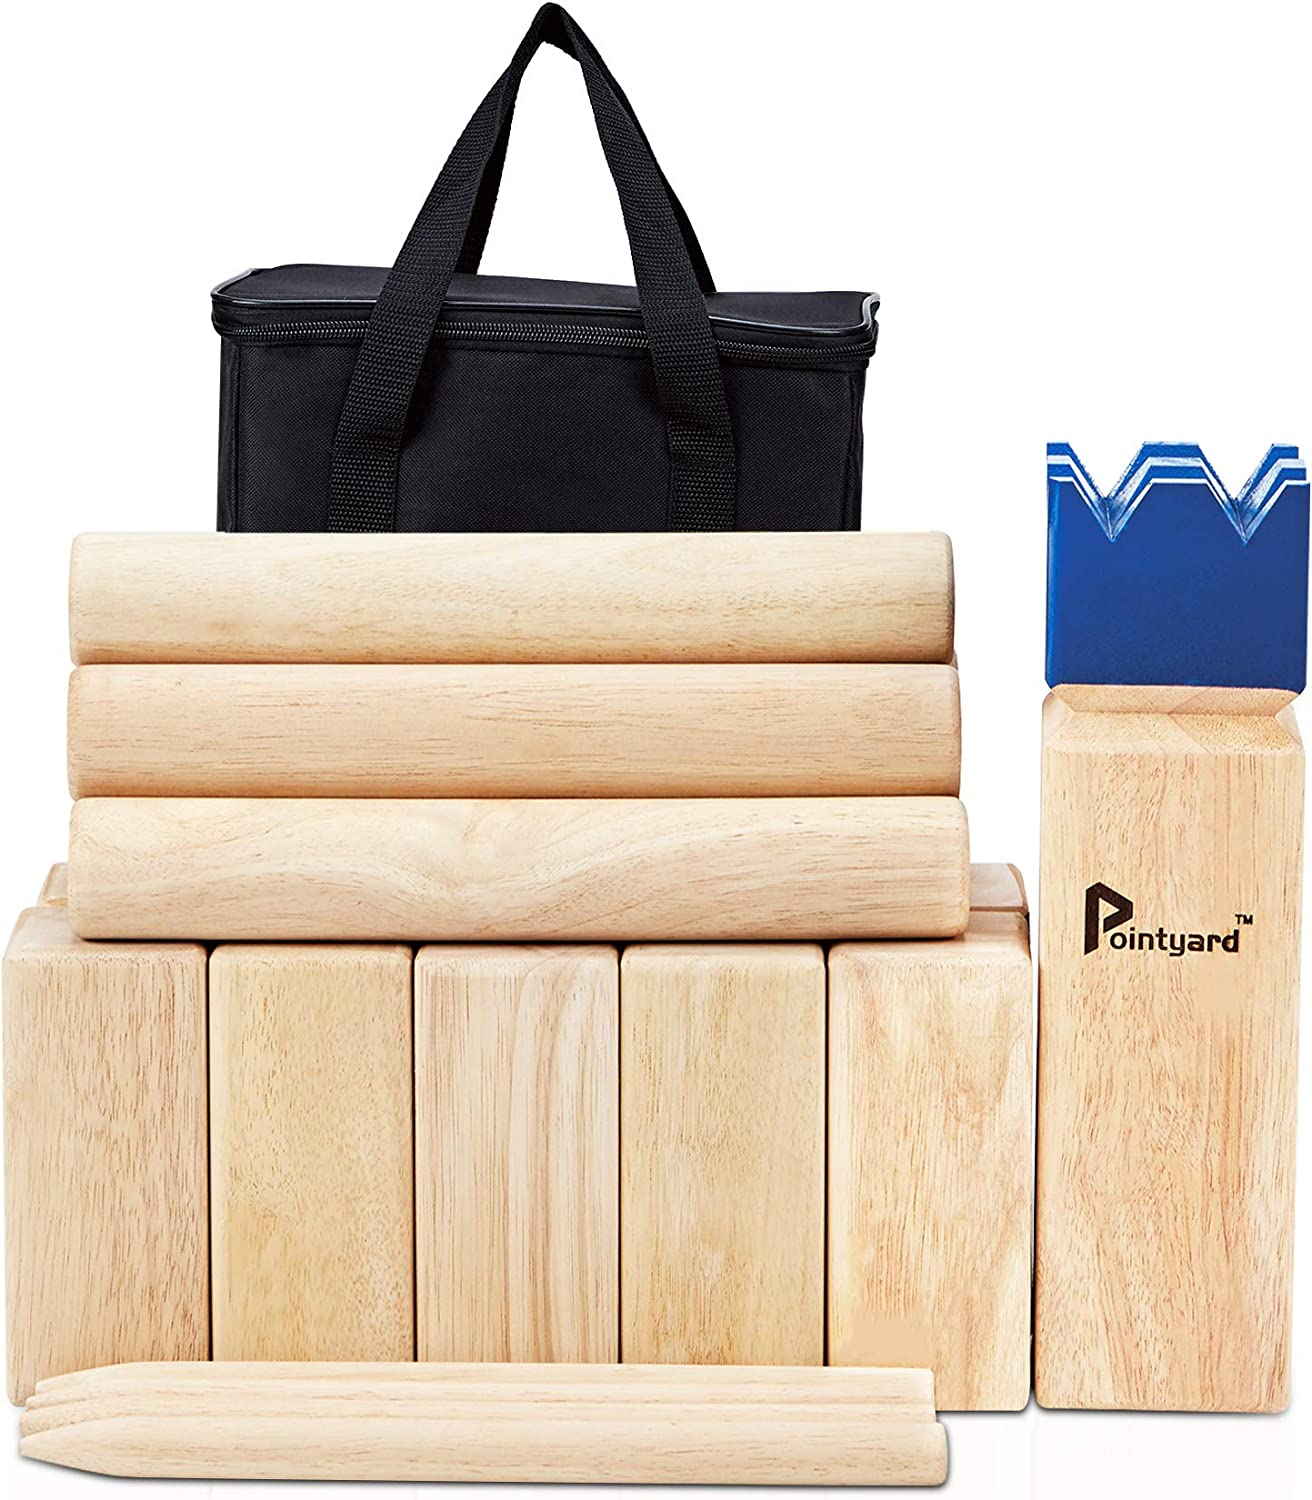 Kubb Game Set Premium Size Outdoor Yard Tossing Game with Carrying Case Family